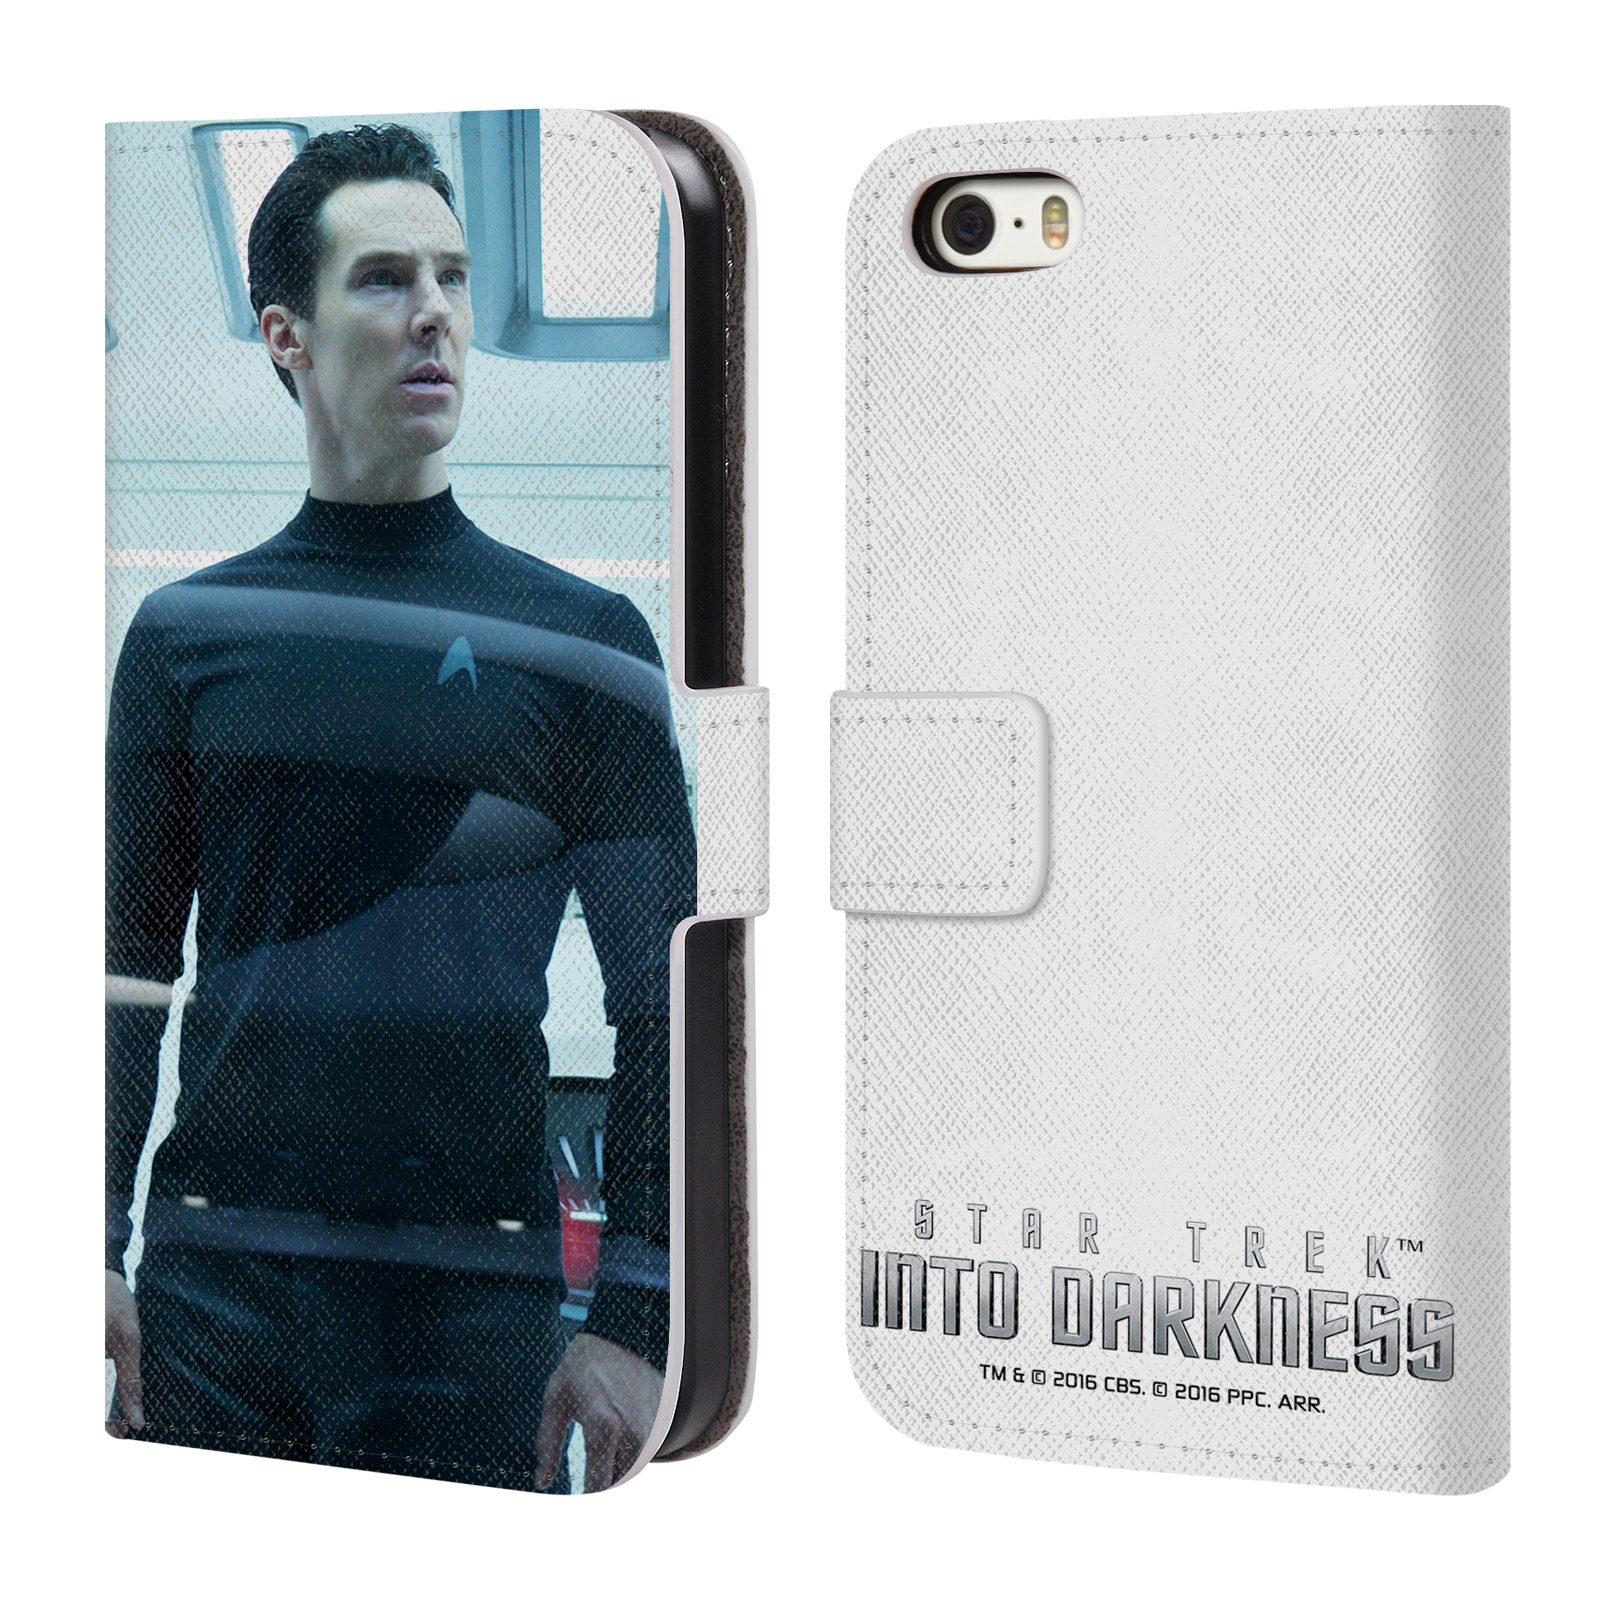 OFFICIAL STAR TREK MOVIE STILLS INTO DARKNESS XII LEATHER BOOK WALLET CASE COVER FOR APPLE IPHONE PHONES